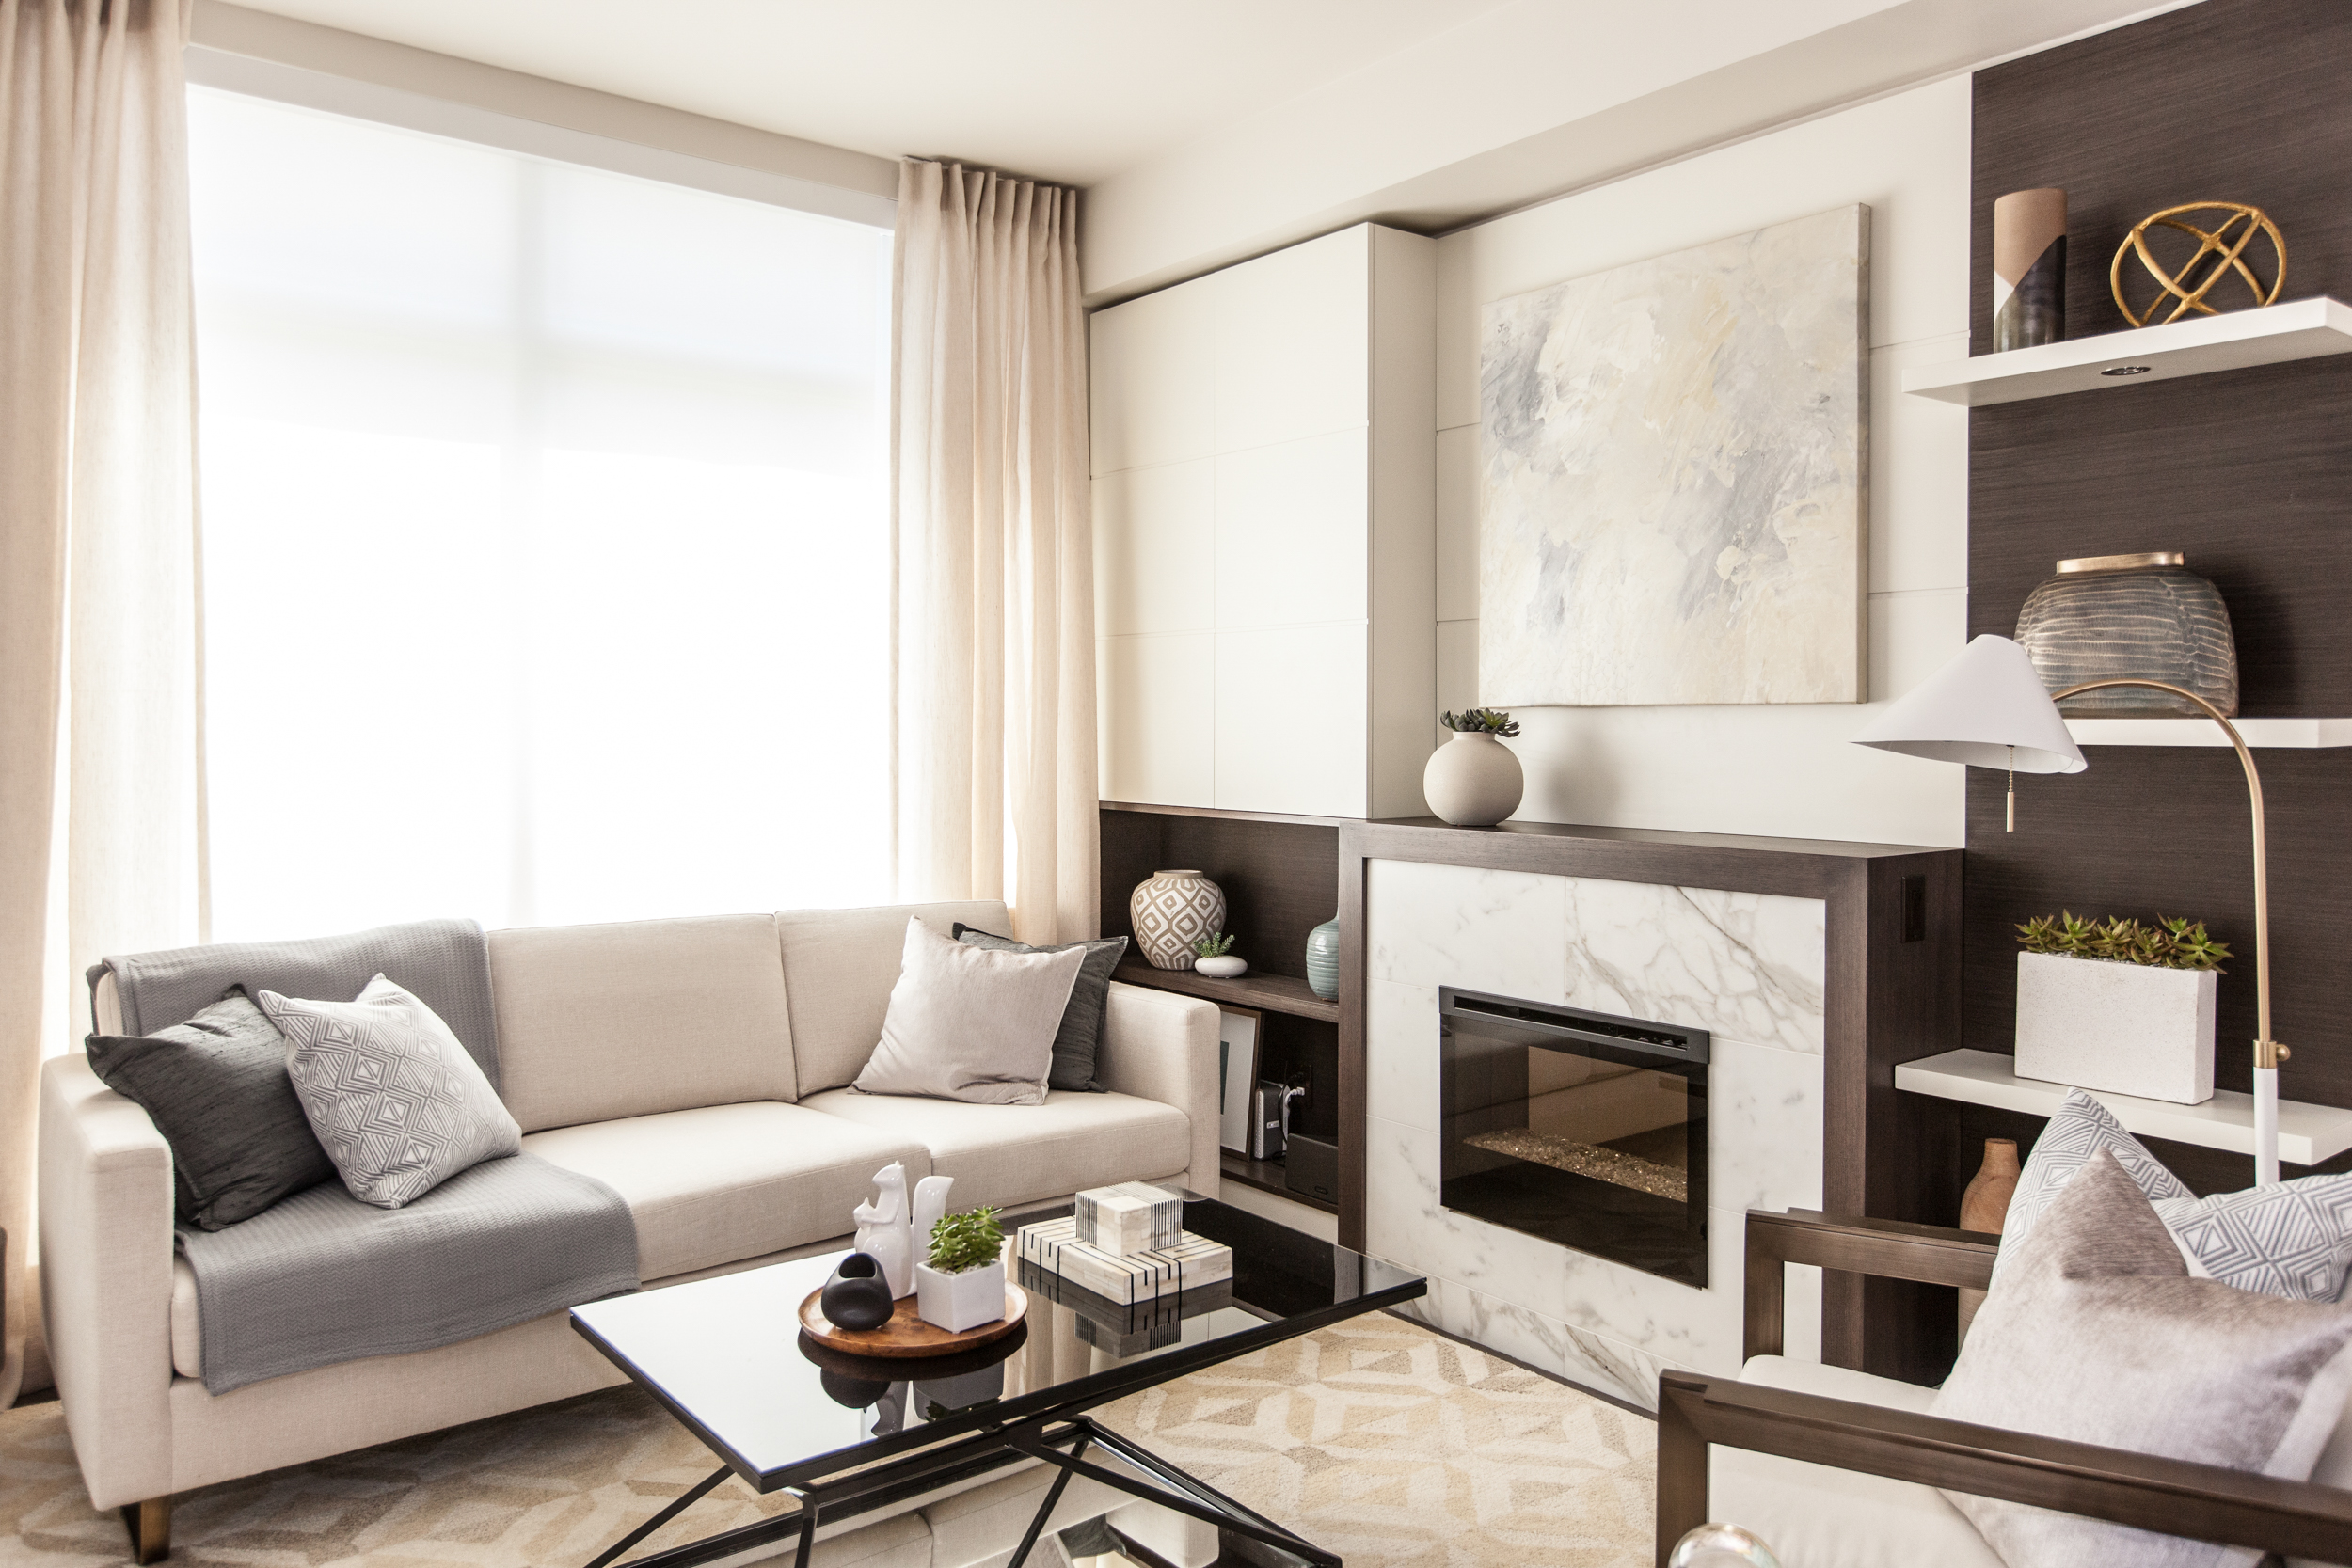 vancouver-showhome--0006.JPG